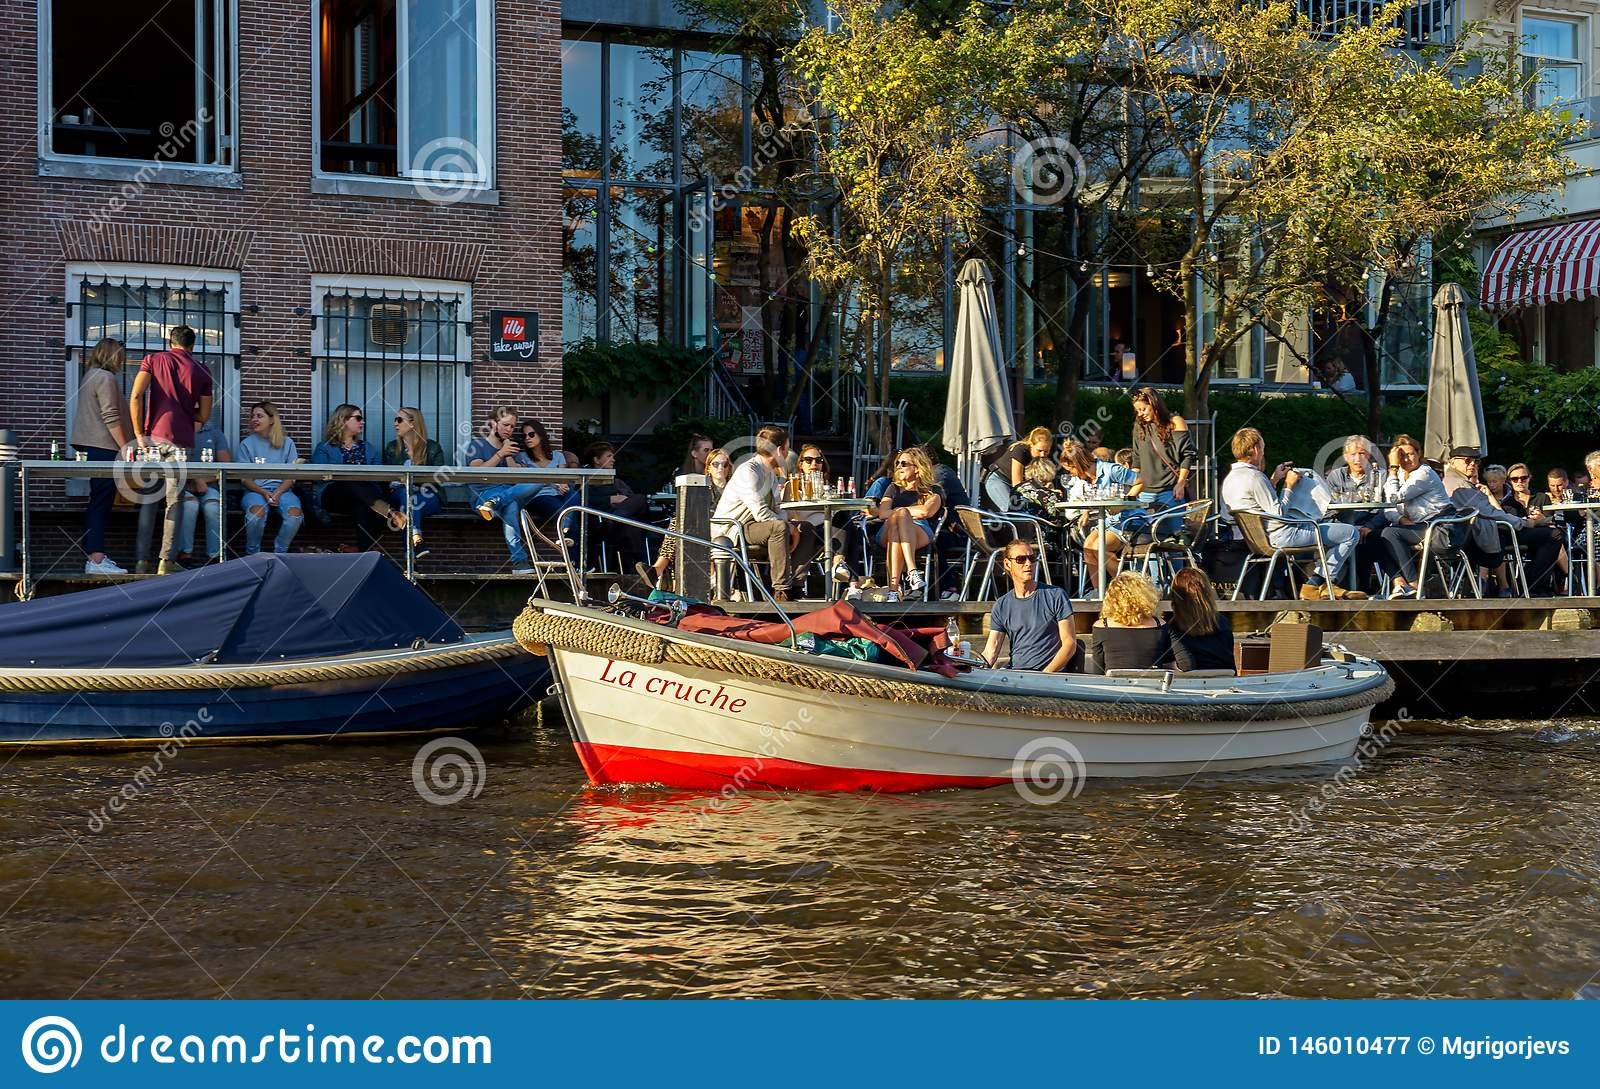 People sitting in Cafe restaurant on the canal in Amsterdam with parked small city tour boat, the Netherlands, October 13, 2017